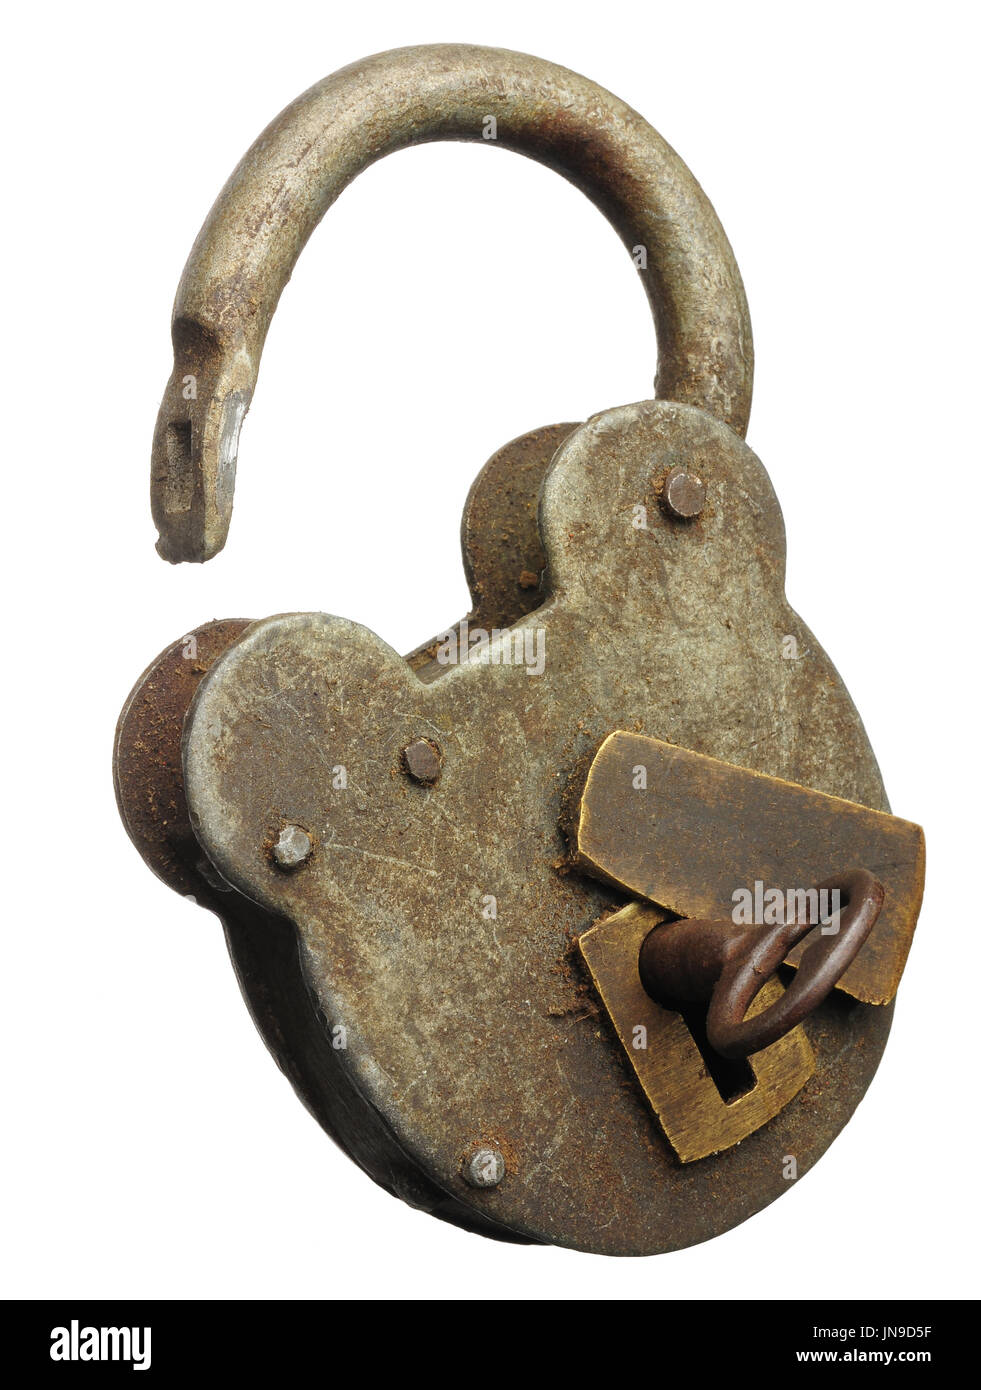 An old padlock opened with the key in the lock - Stock Image